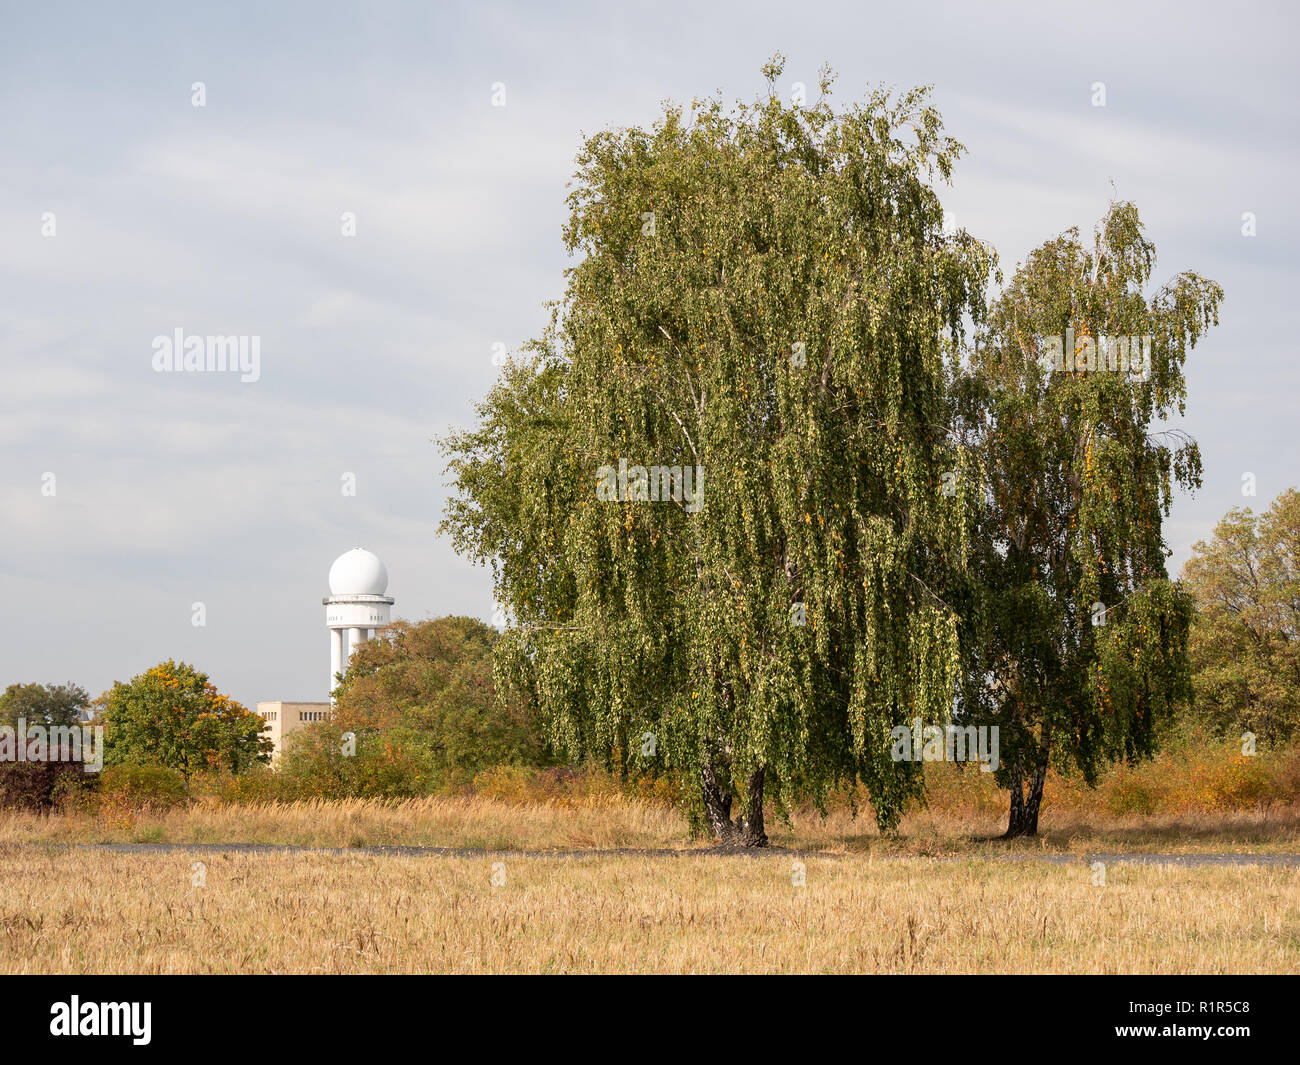 Trees And Former Radar Tower In Public City Park Tempelhofer Feld, Former Tempelhof Airport In Berlin, Germany - Stock Image